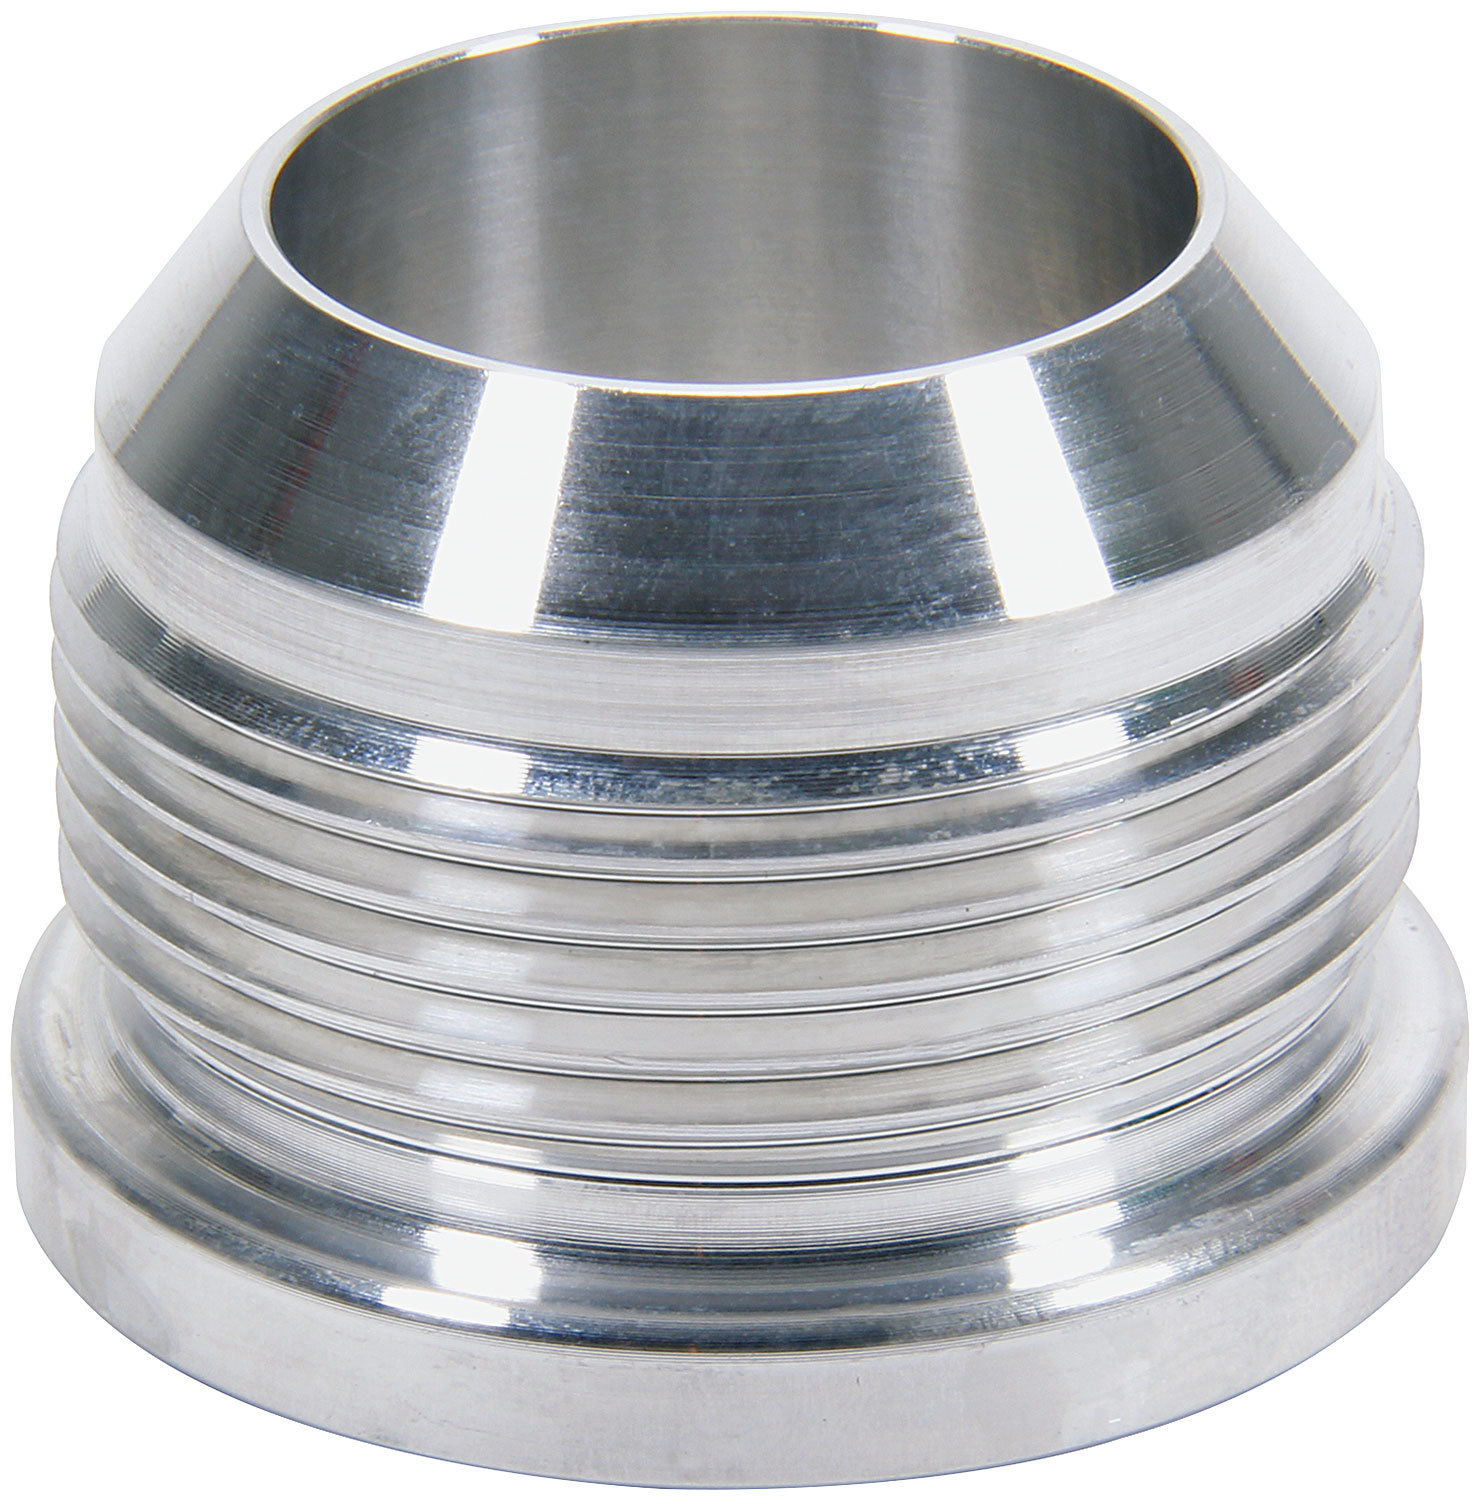 Allstar Performance 50765 Bung, 16 AN Male, Weld-On, Aluminum, Natural, Each